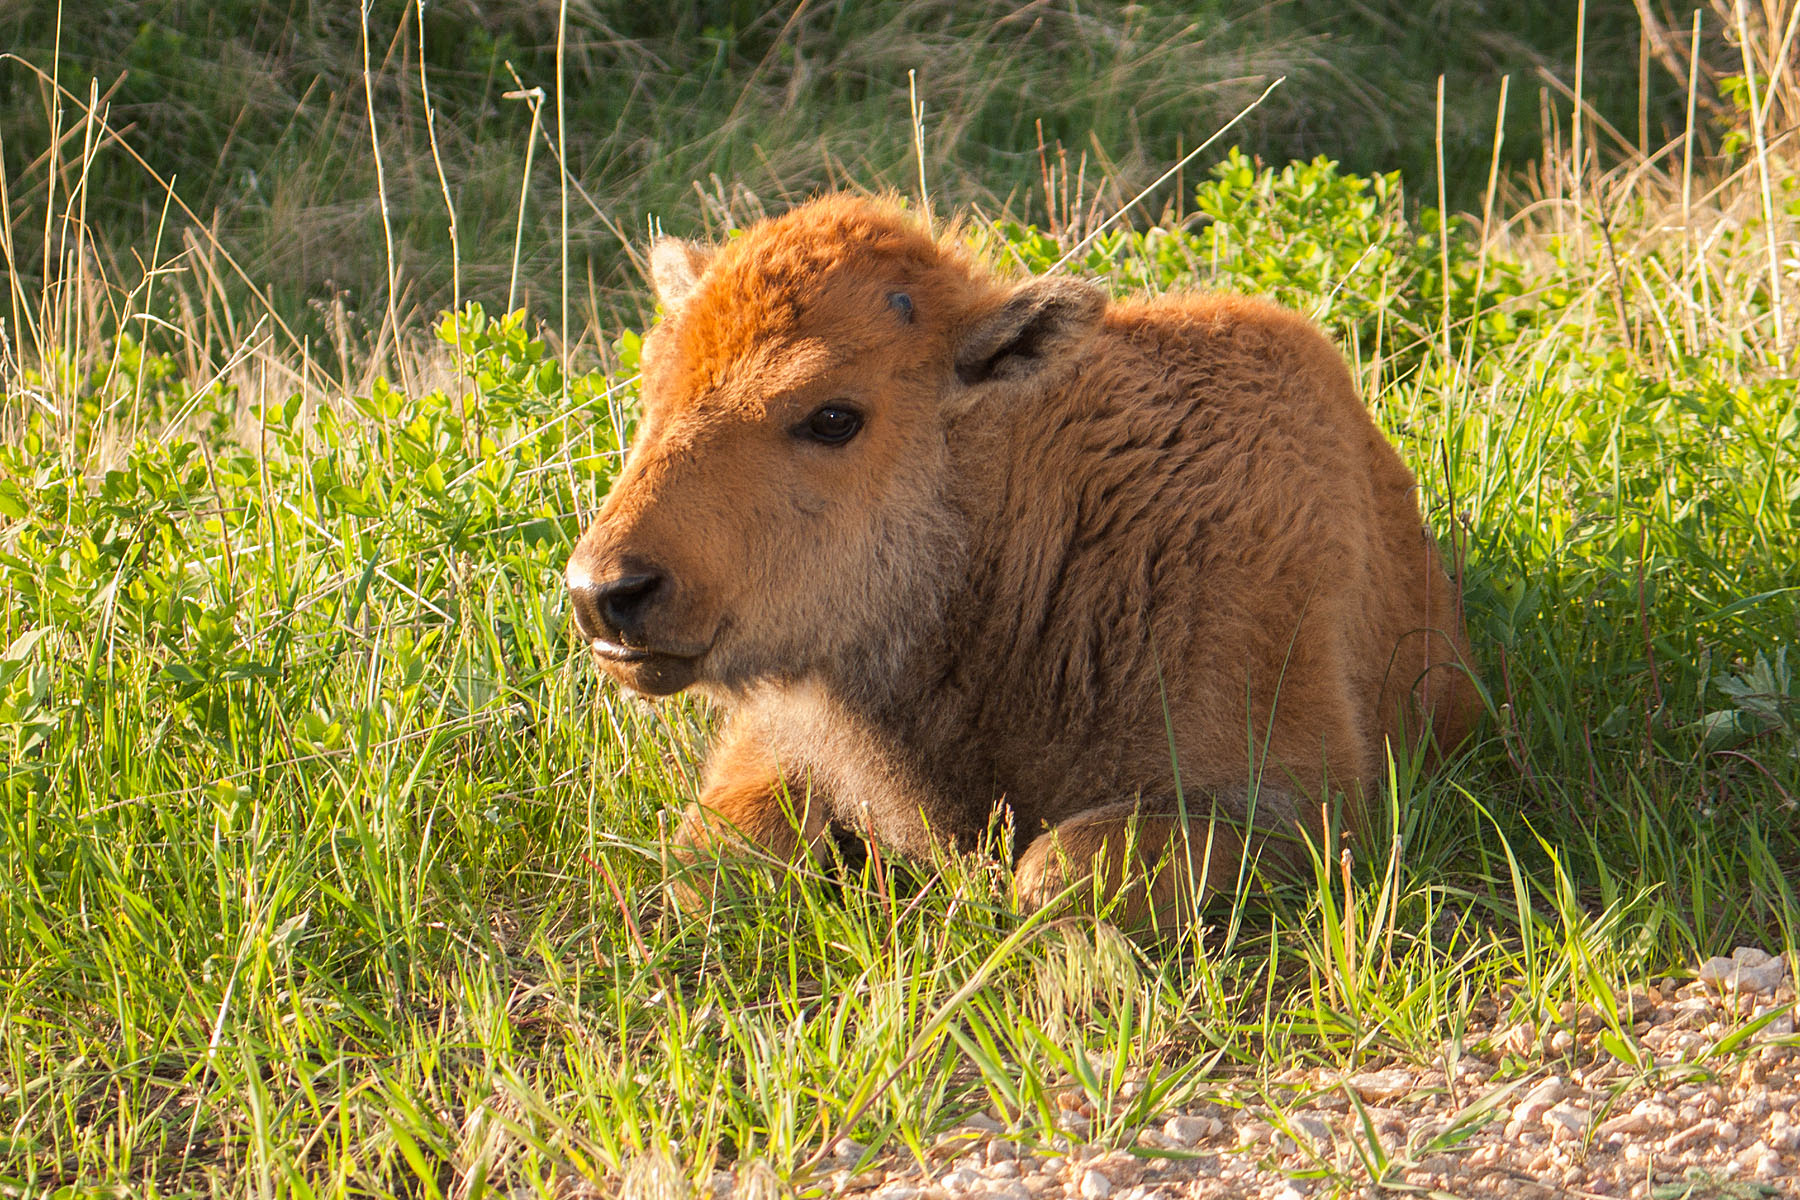 Bison calf, Custer State Park, May 2009.  Click for next photo.